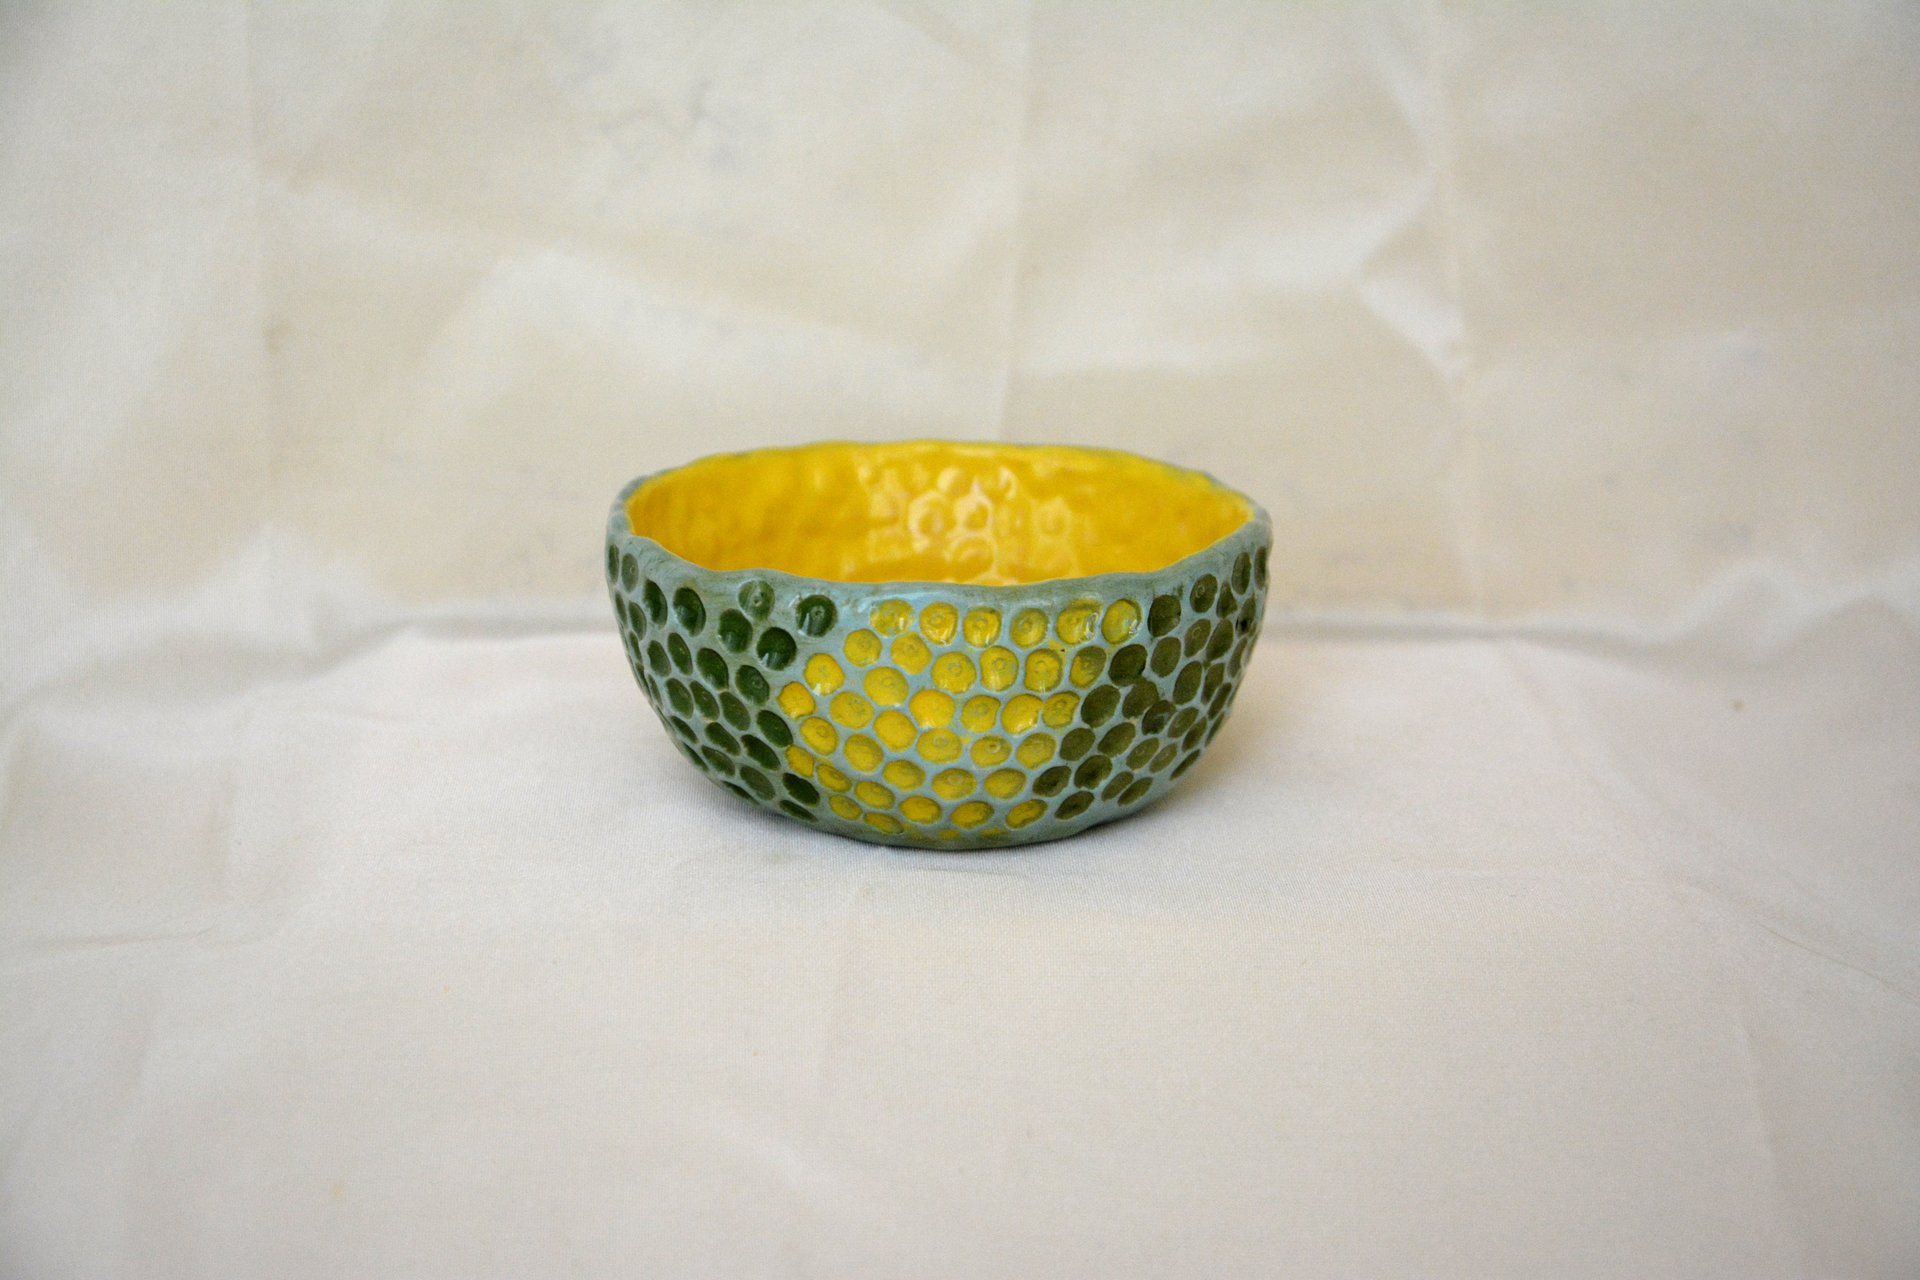 Yellow-blue with textured dots - Pialy and sauceboats, height - 3.5 cm, diameter - 8.5 cm, photo 1 of 3.